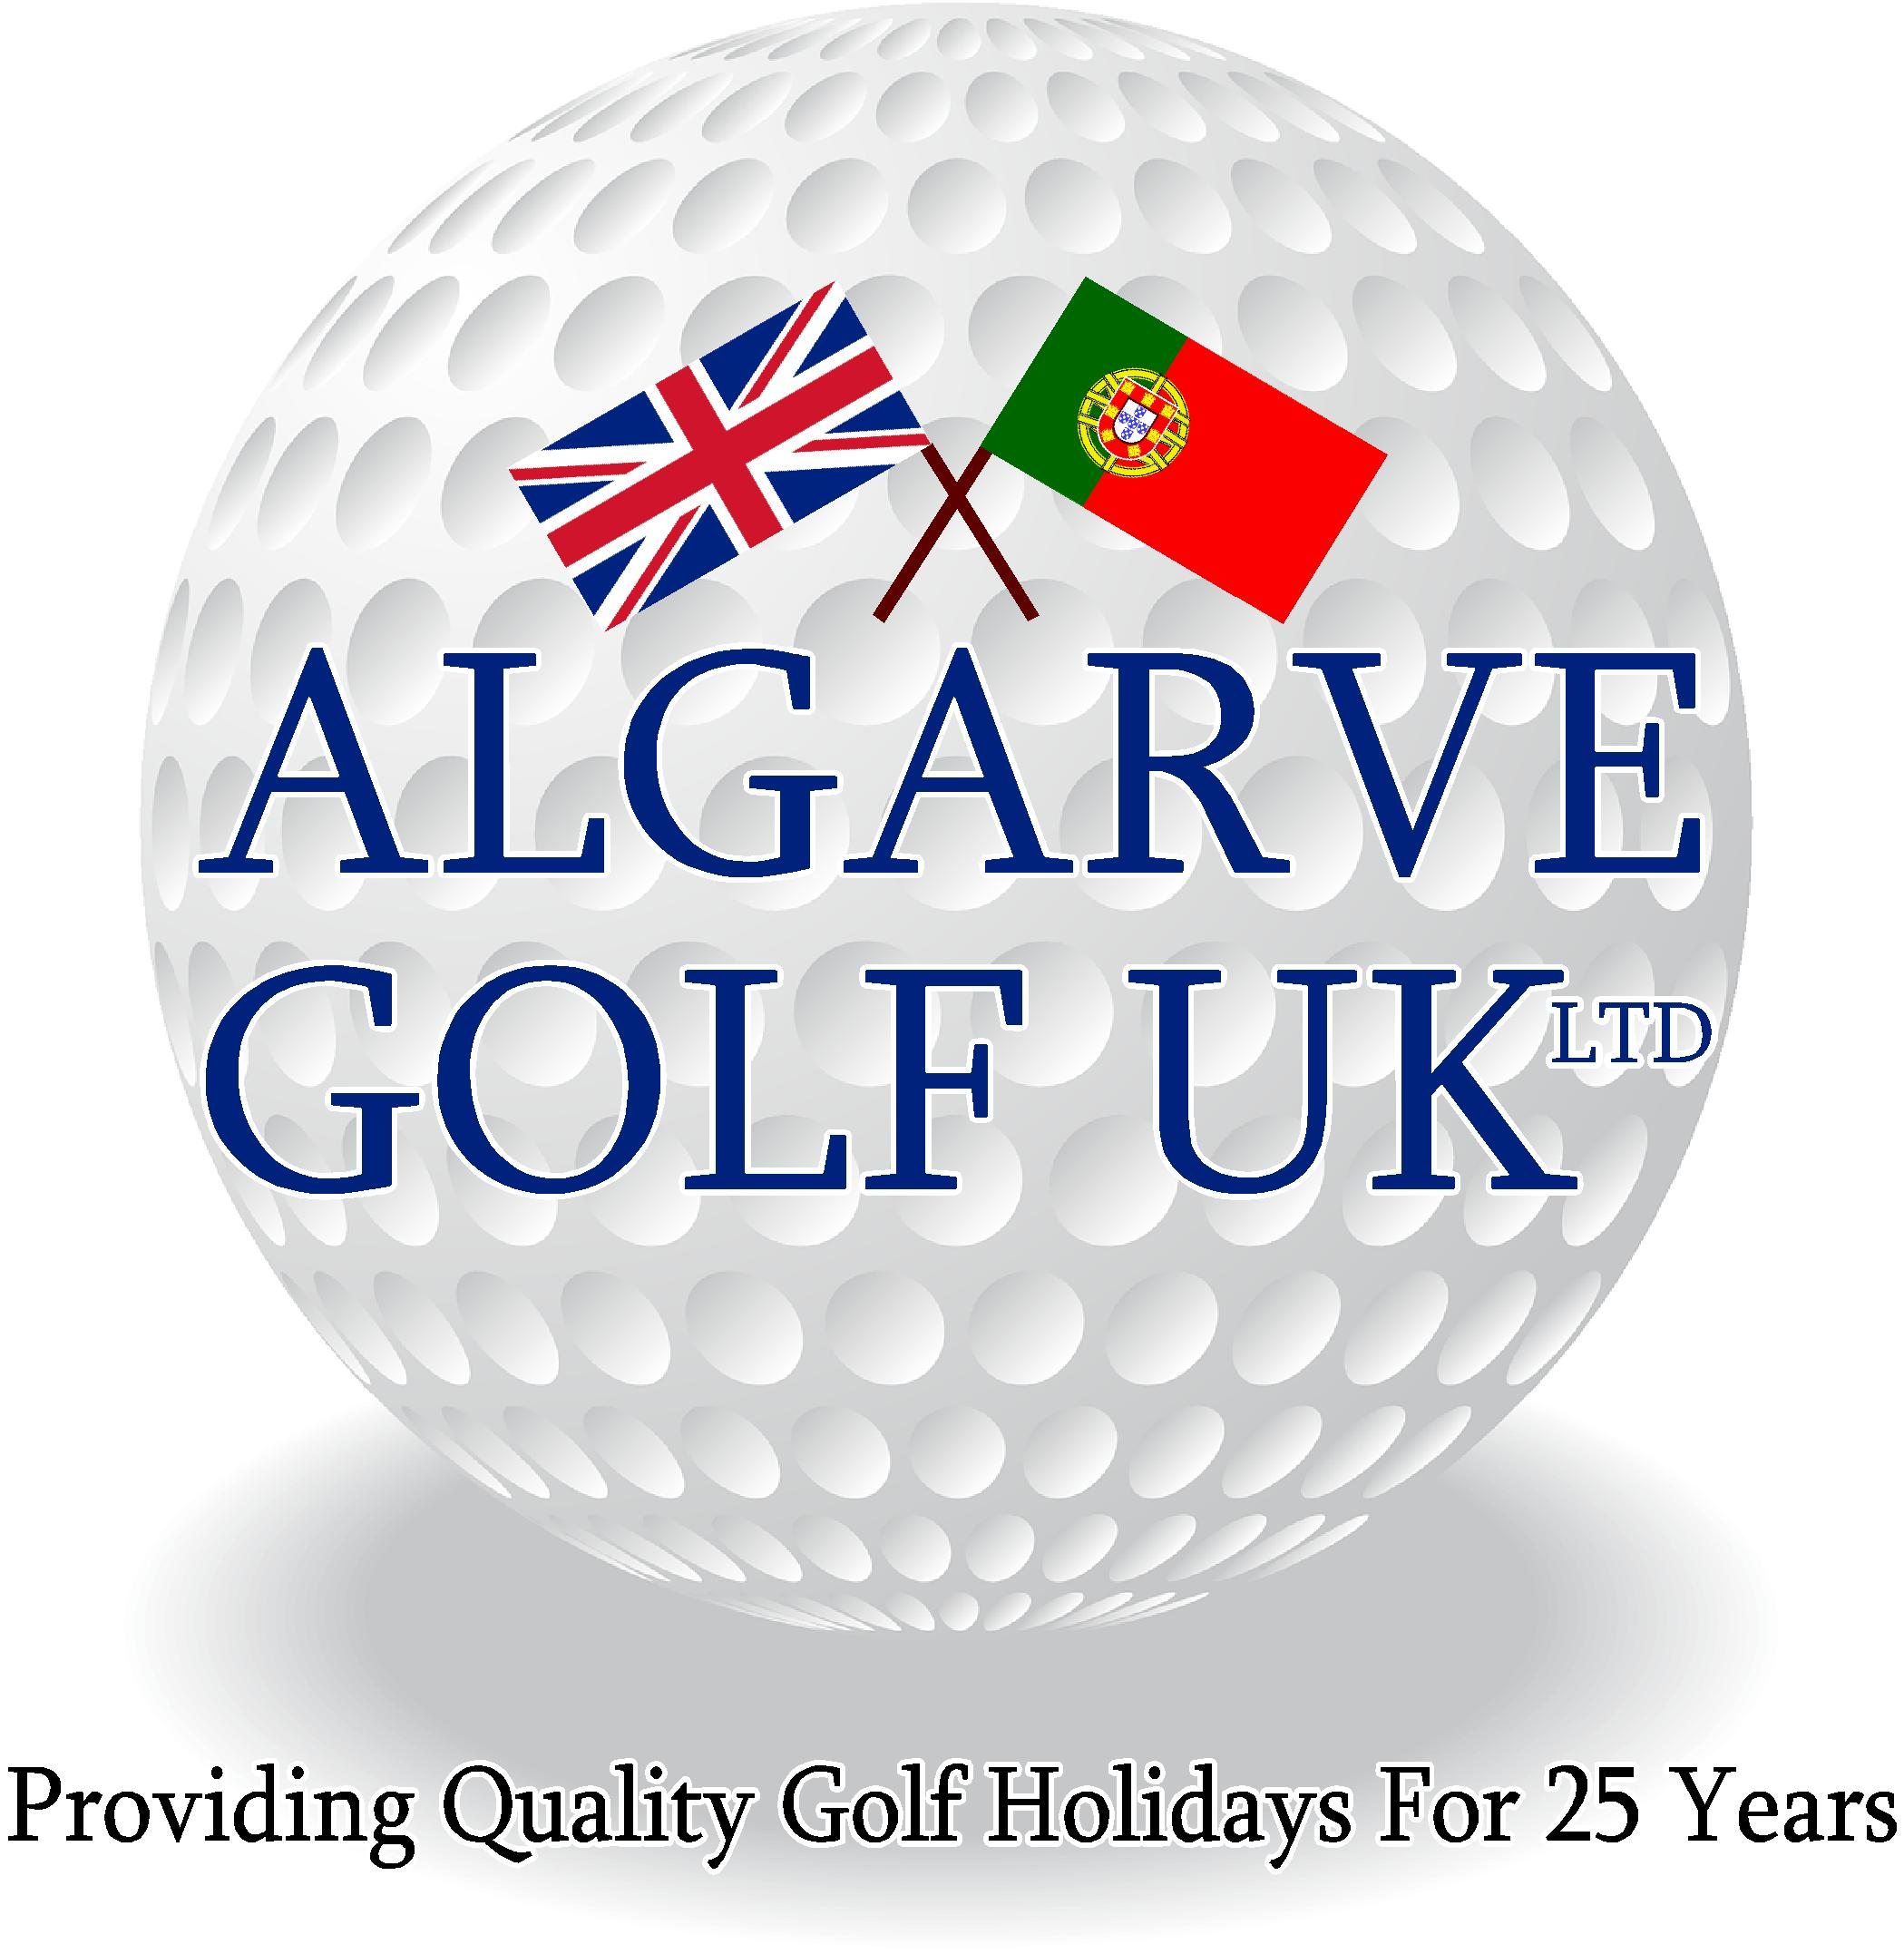 Algarve Golf Holidays | Algarve-Golf.co.uk